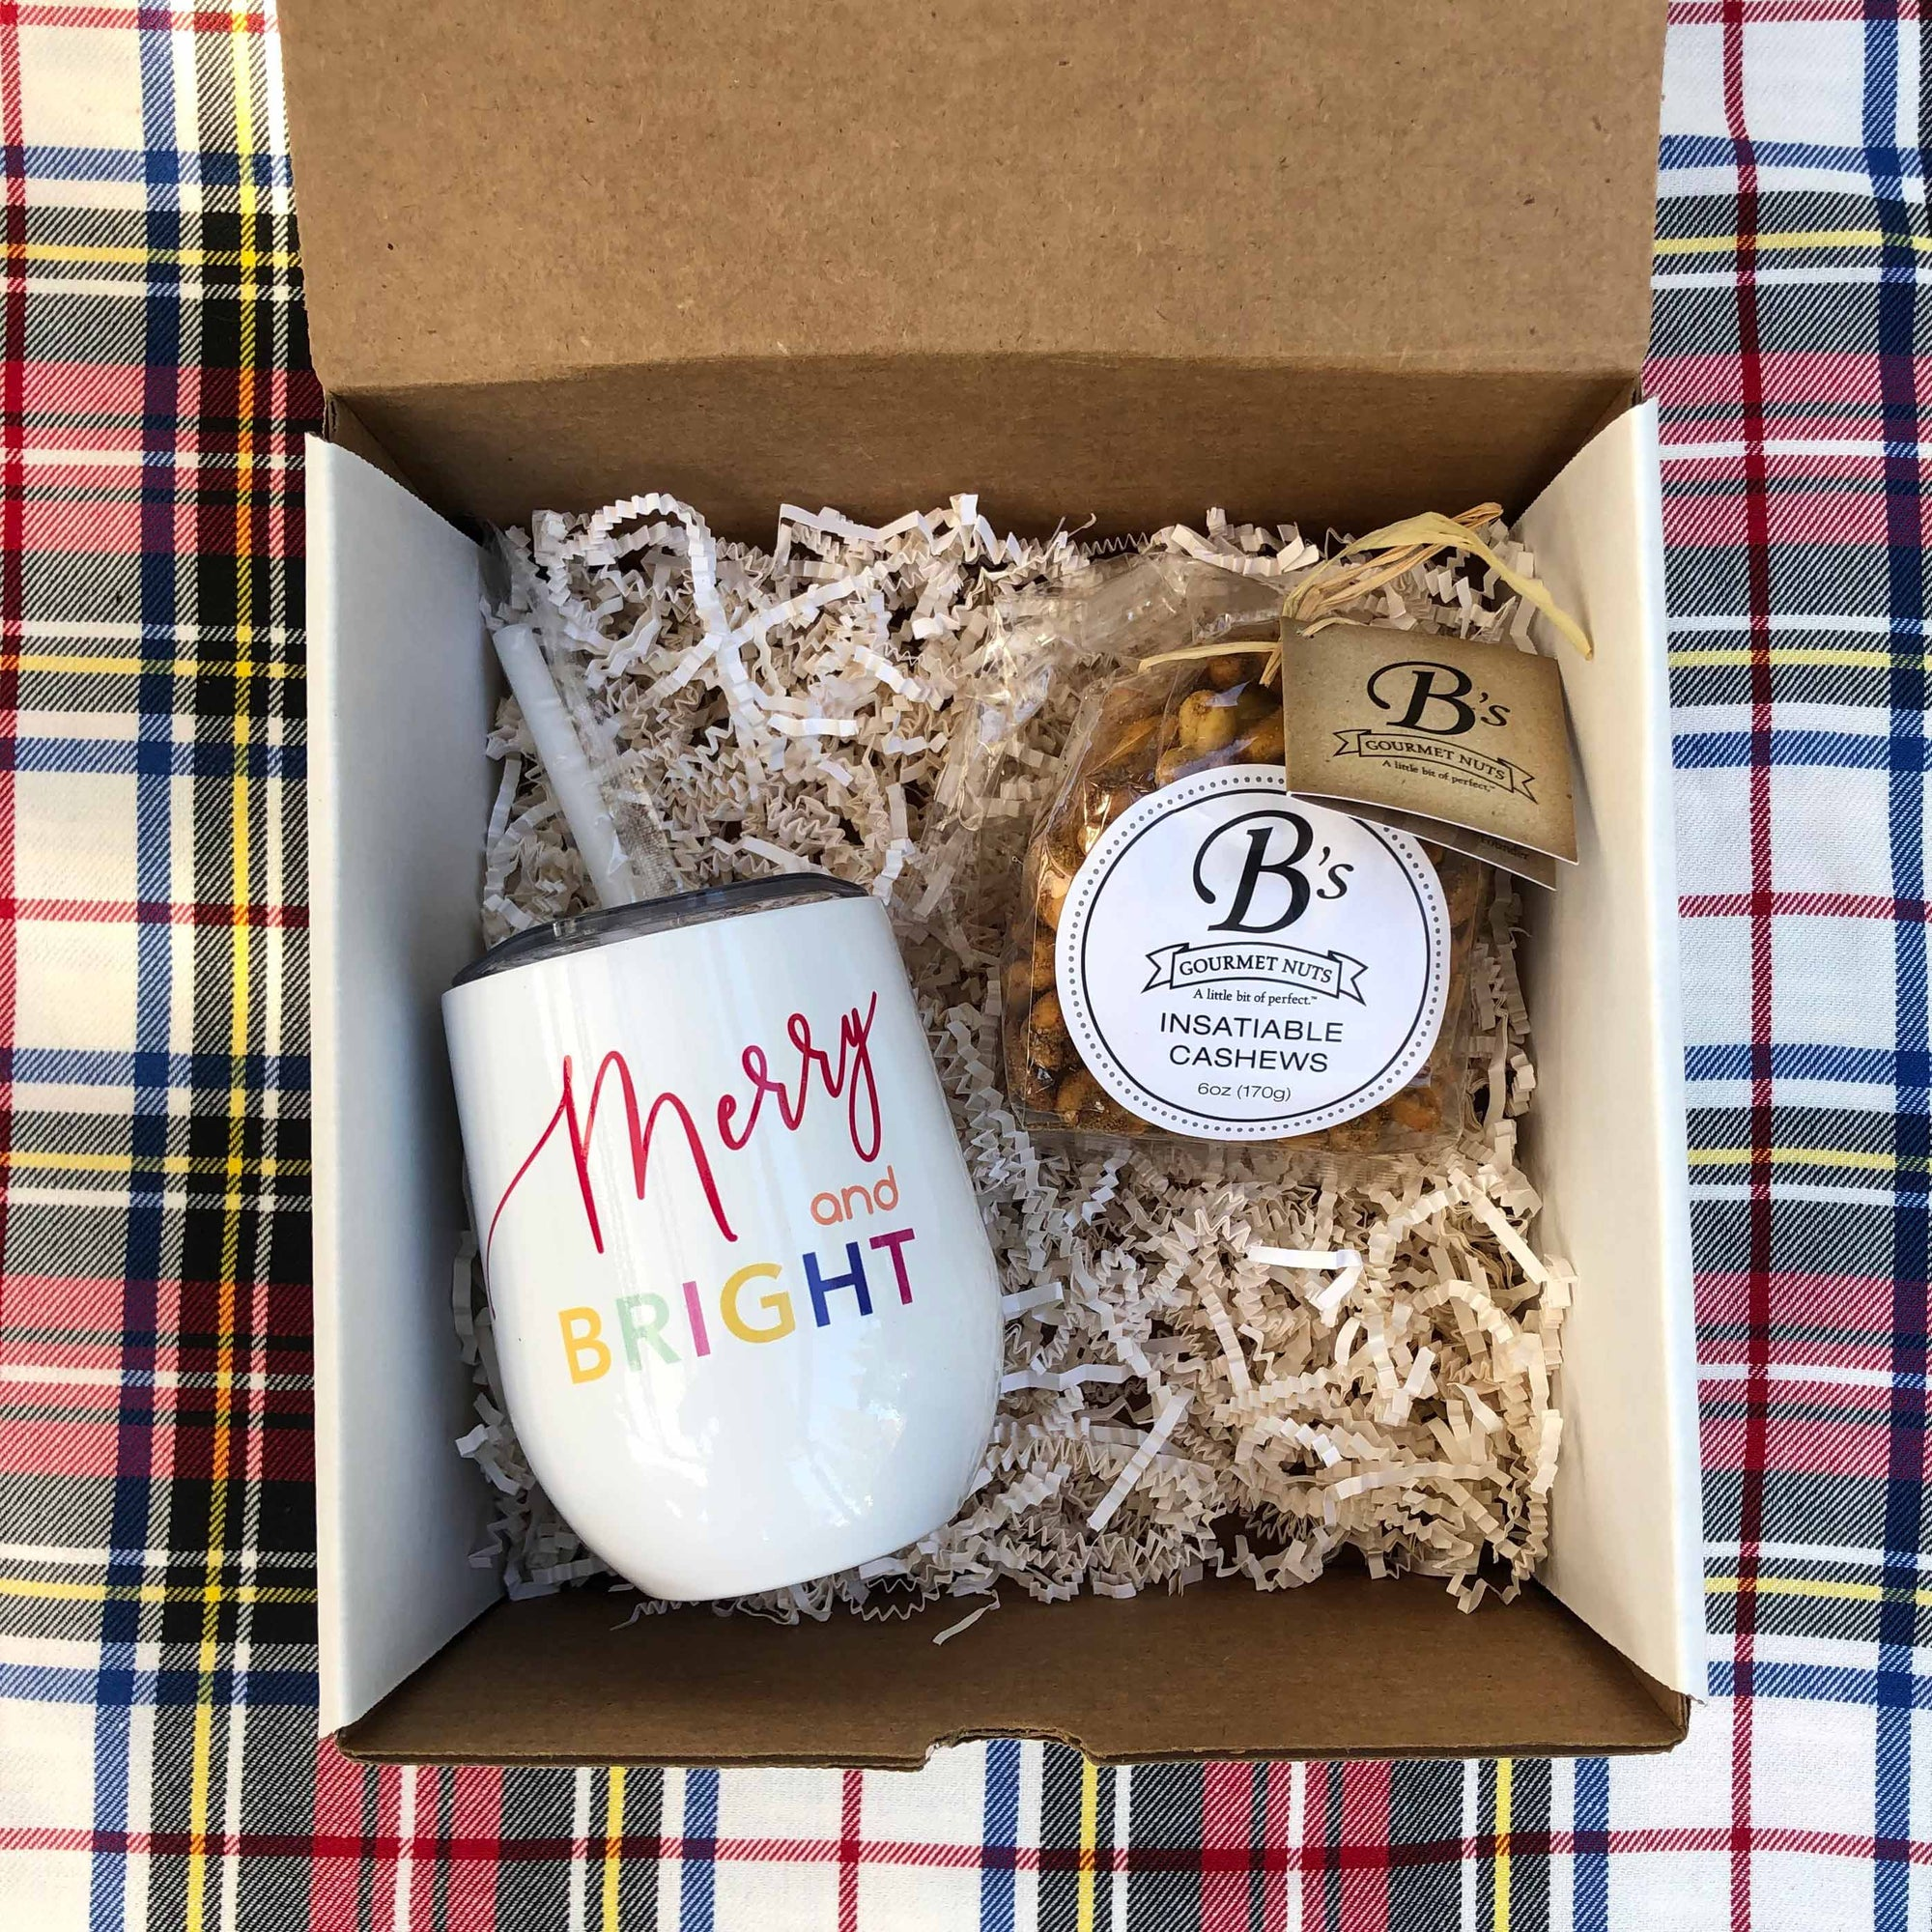 Gift Set - Give Back Merry and Bright